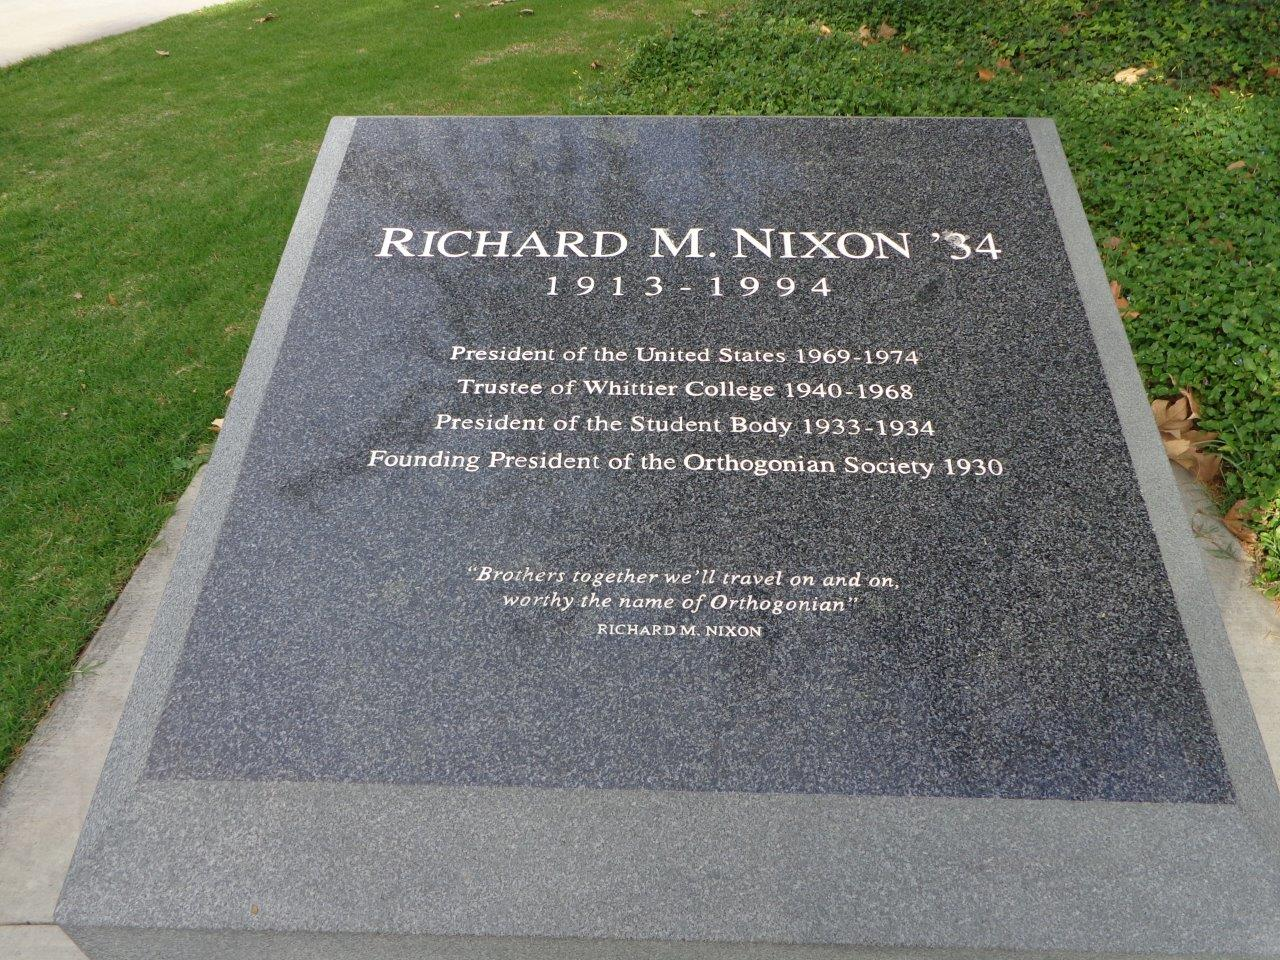 Nixon monument at Whittier College